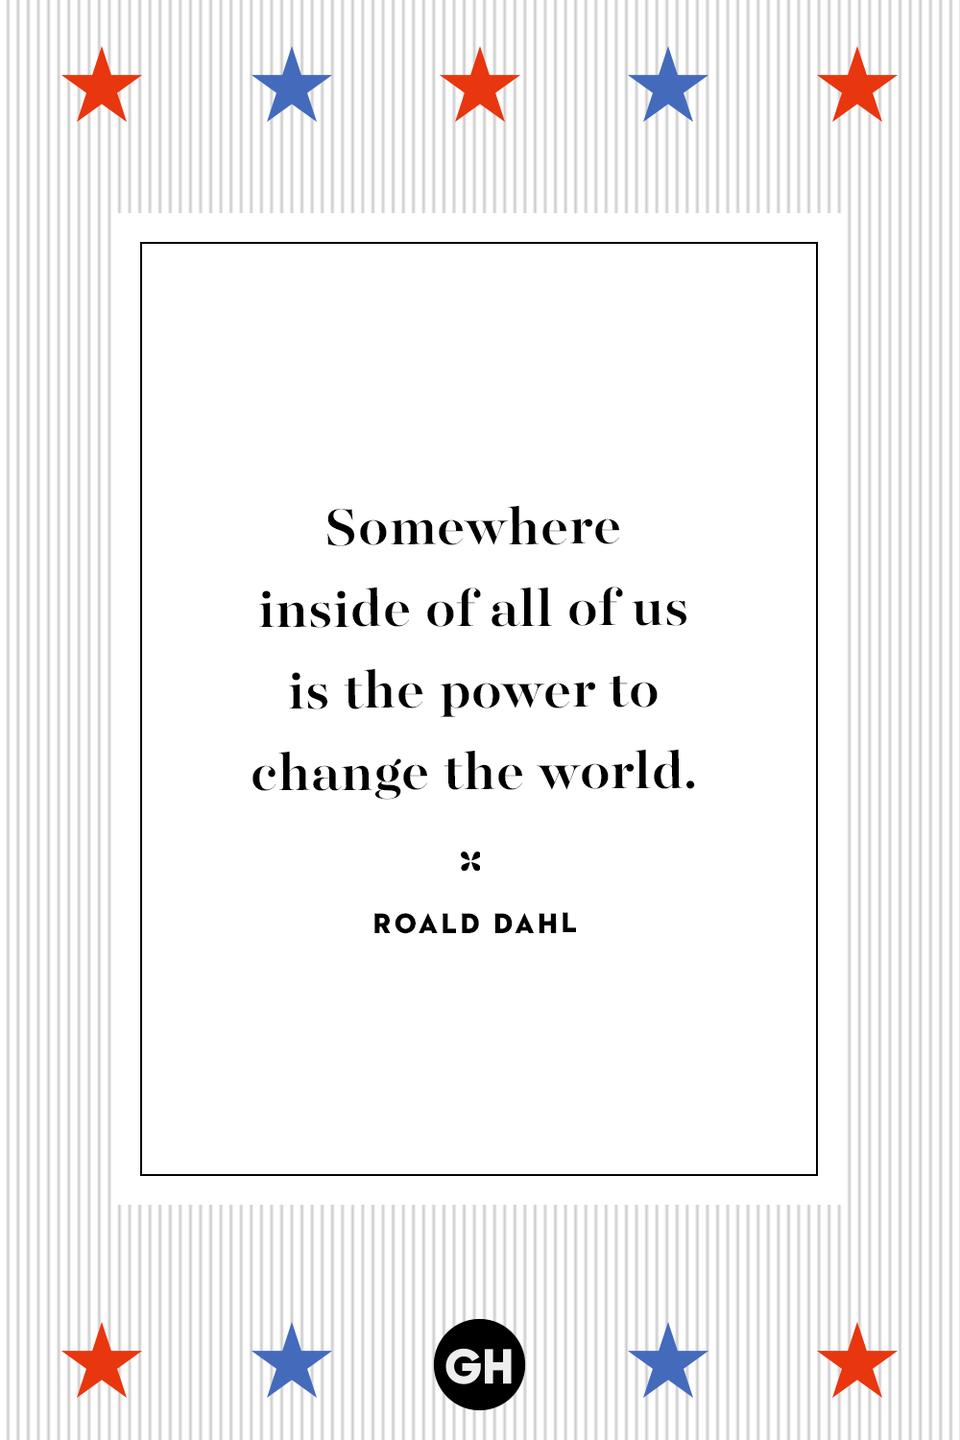 <p>Somewhere inside of all of us is the power to change the world.</p>